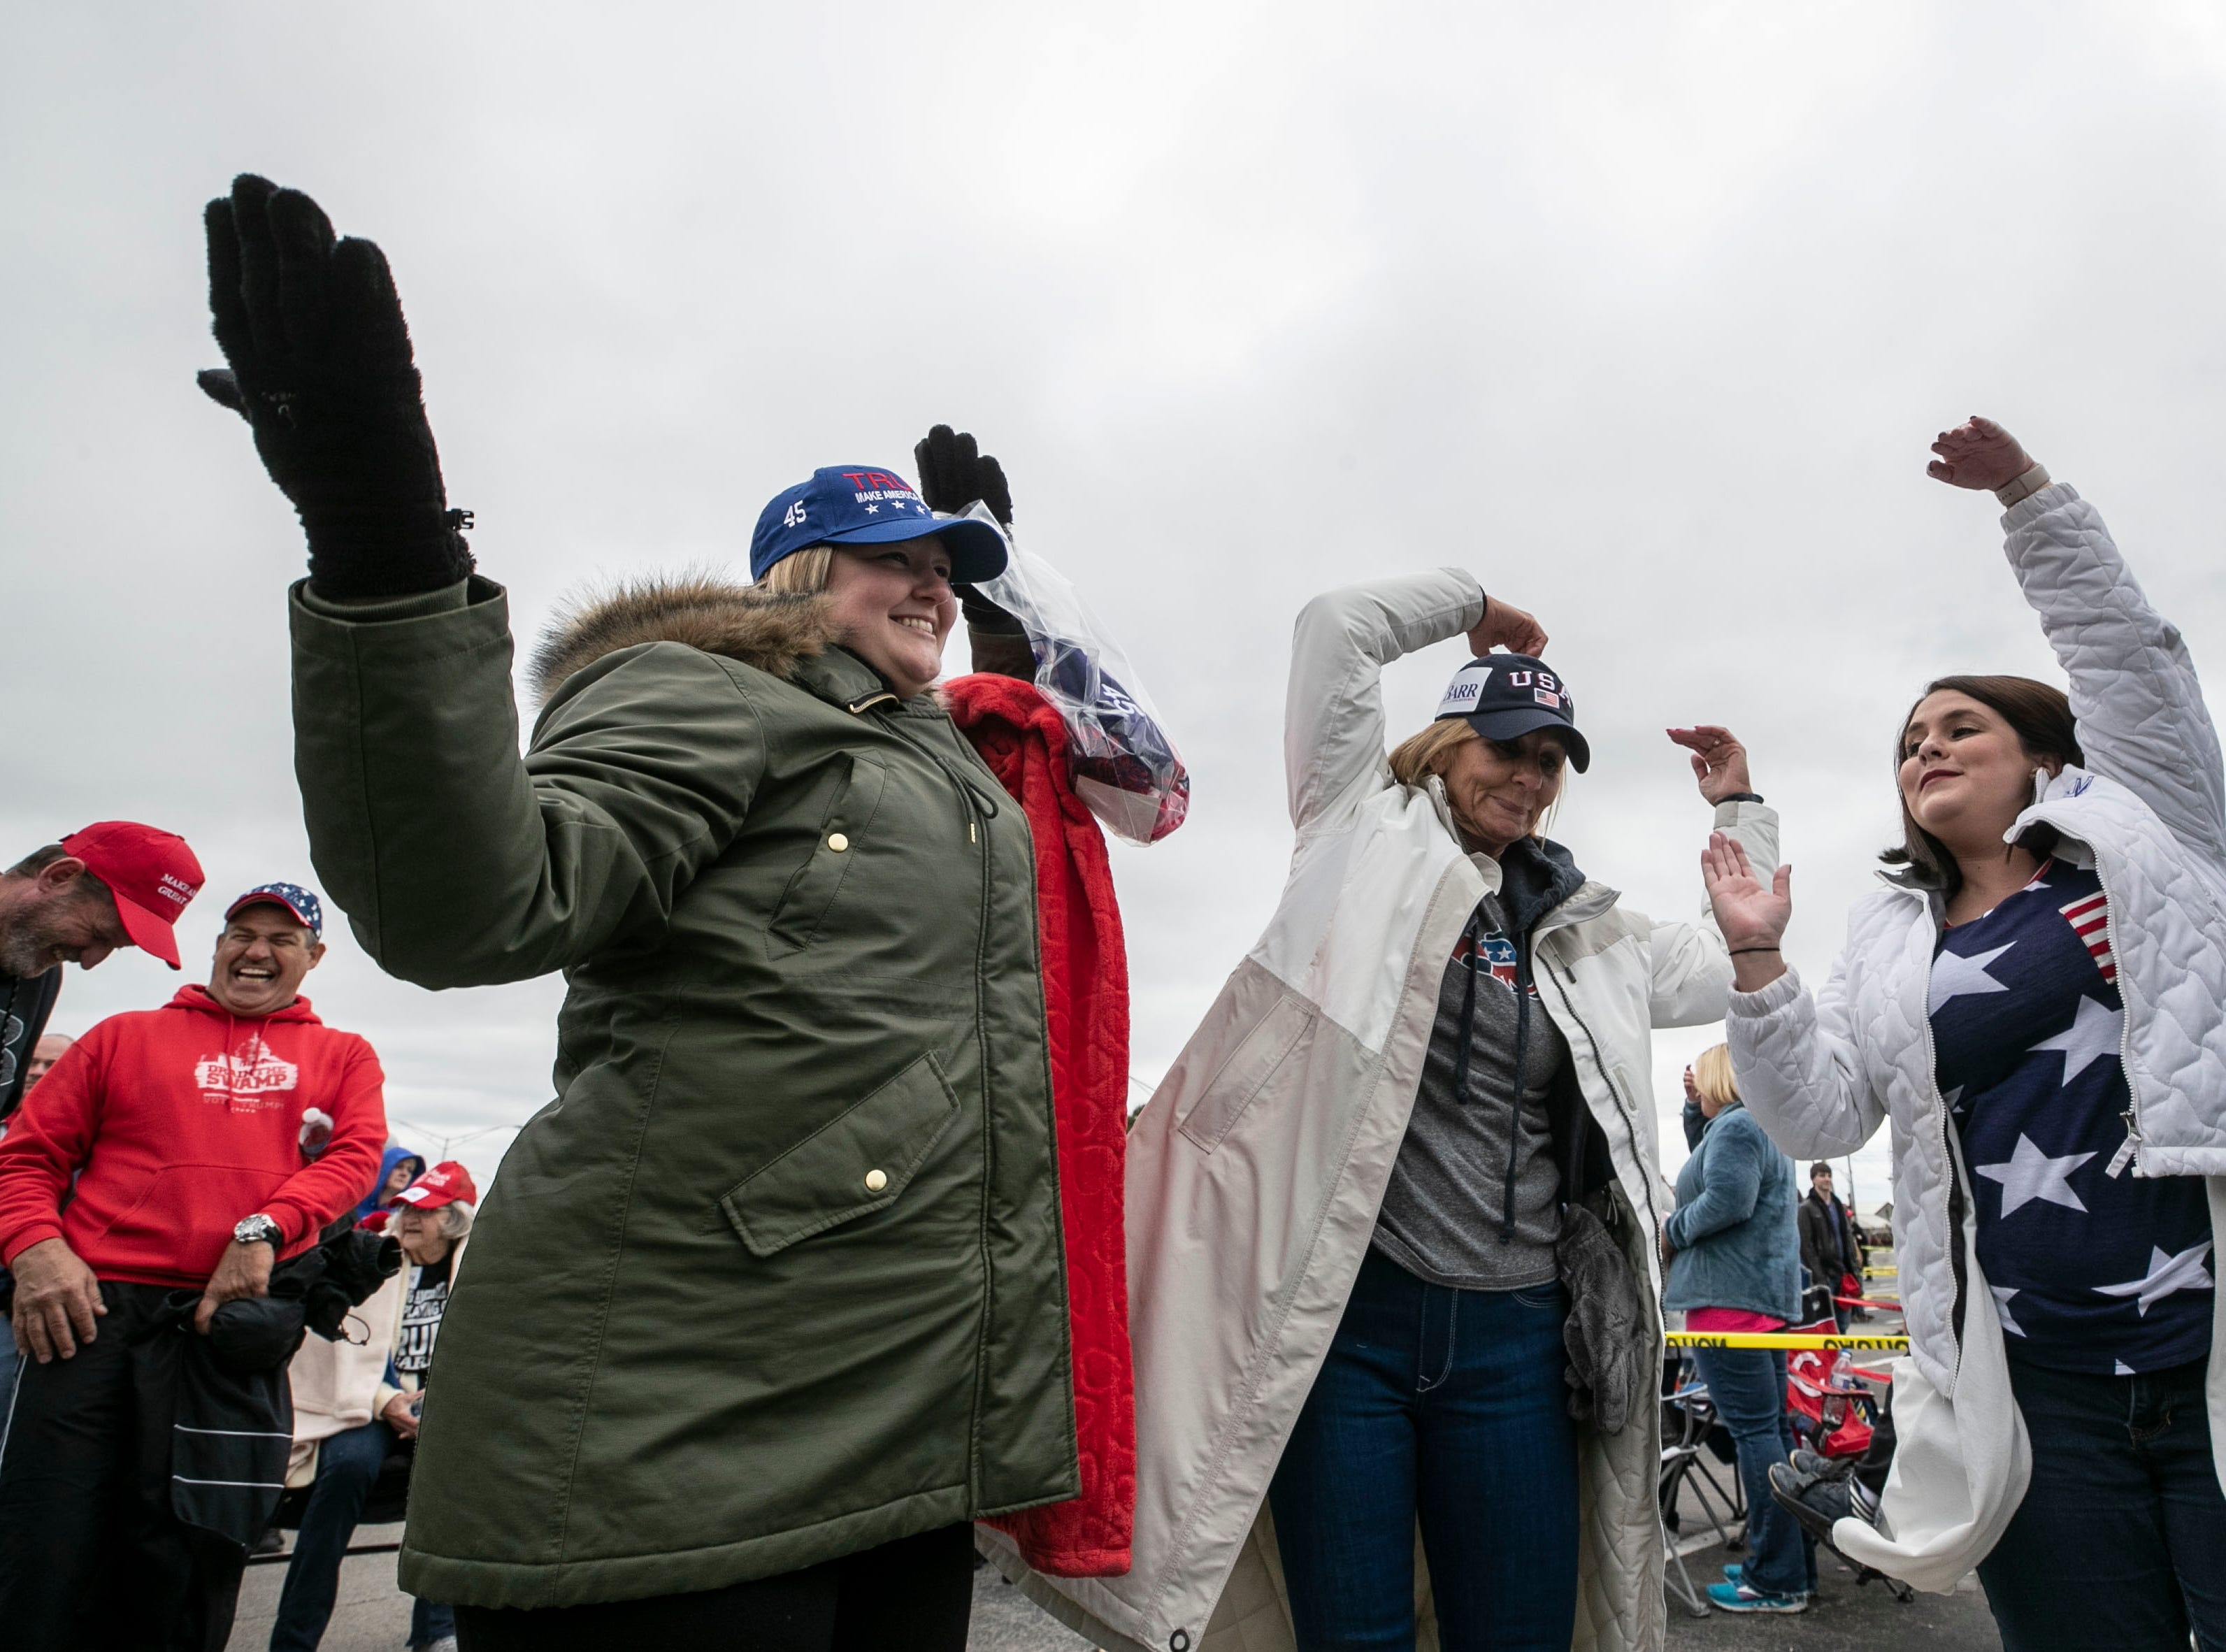 The crowd waiting for President Donald Trump danced as 1970s group The Village People's 'YMCA' played on loudspeakers in a parking lot outside the Alumni Coliseum in Richmond, Ky.